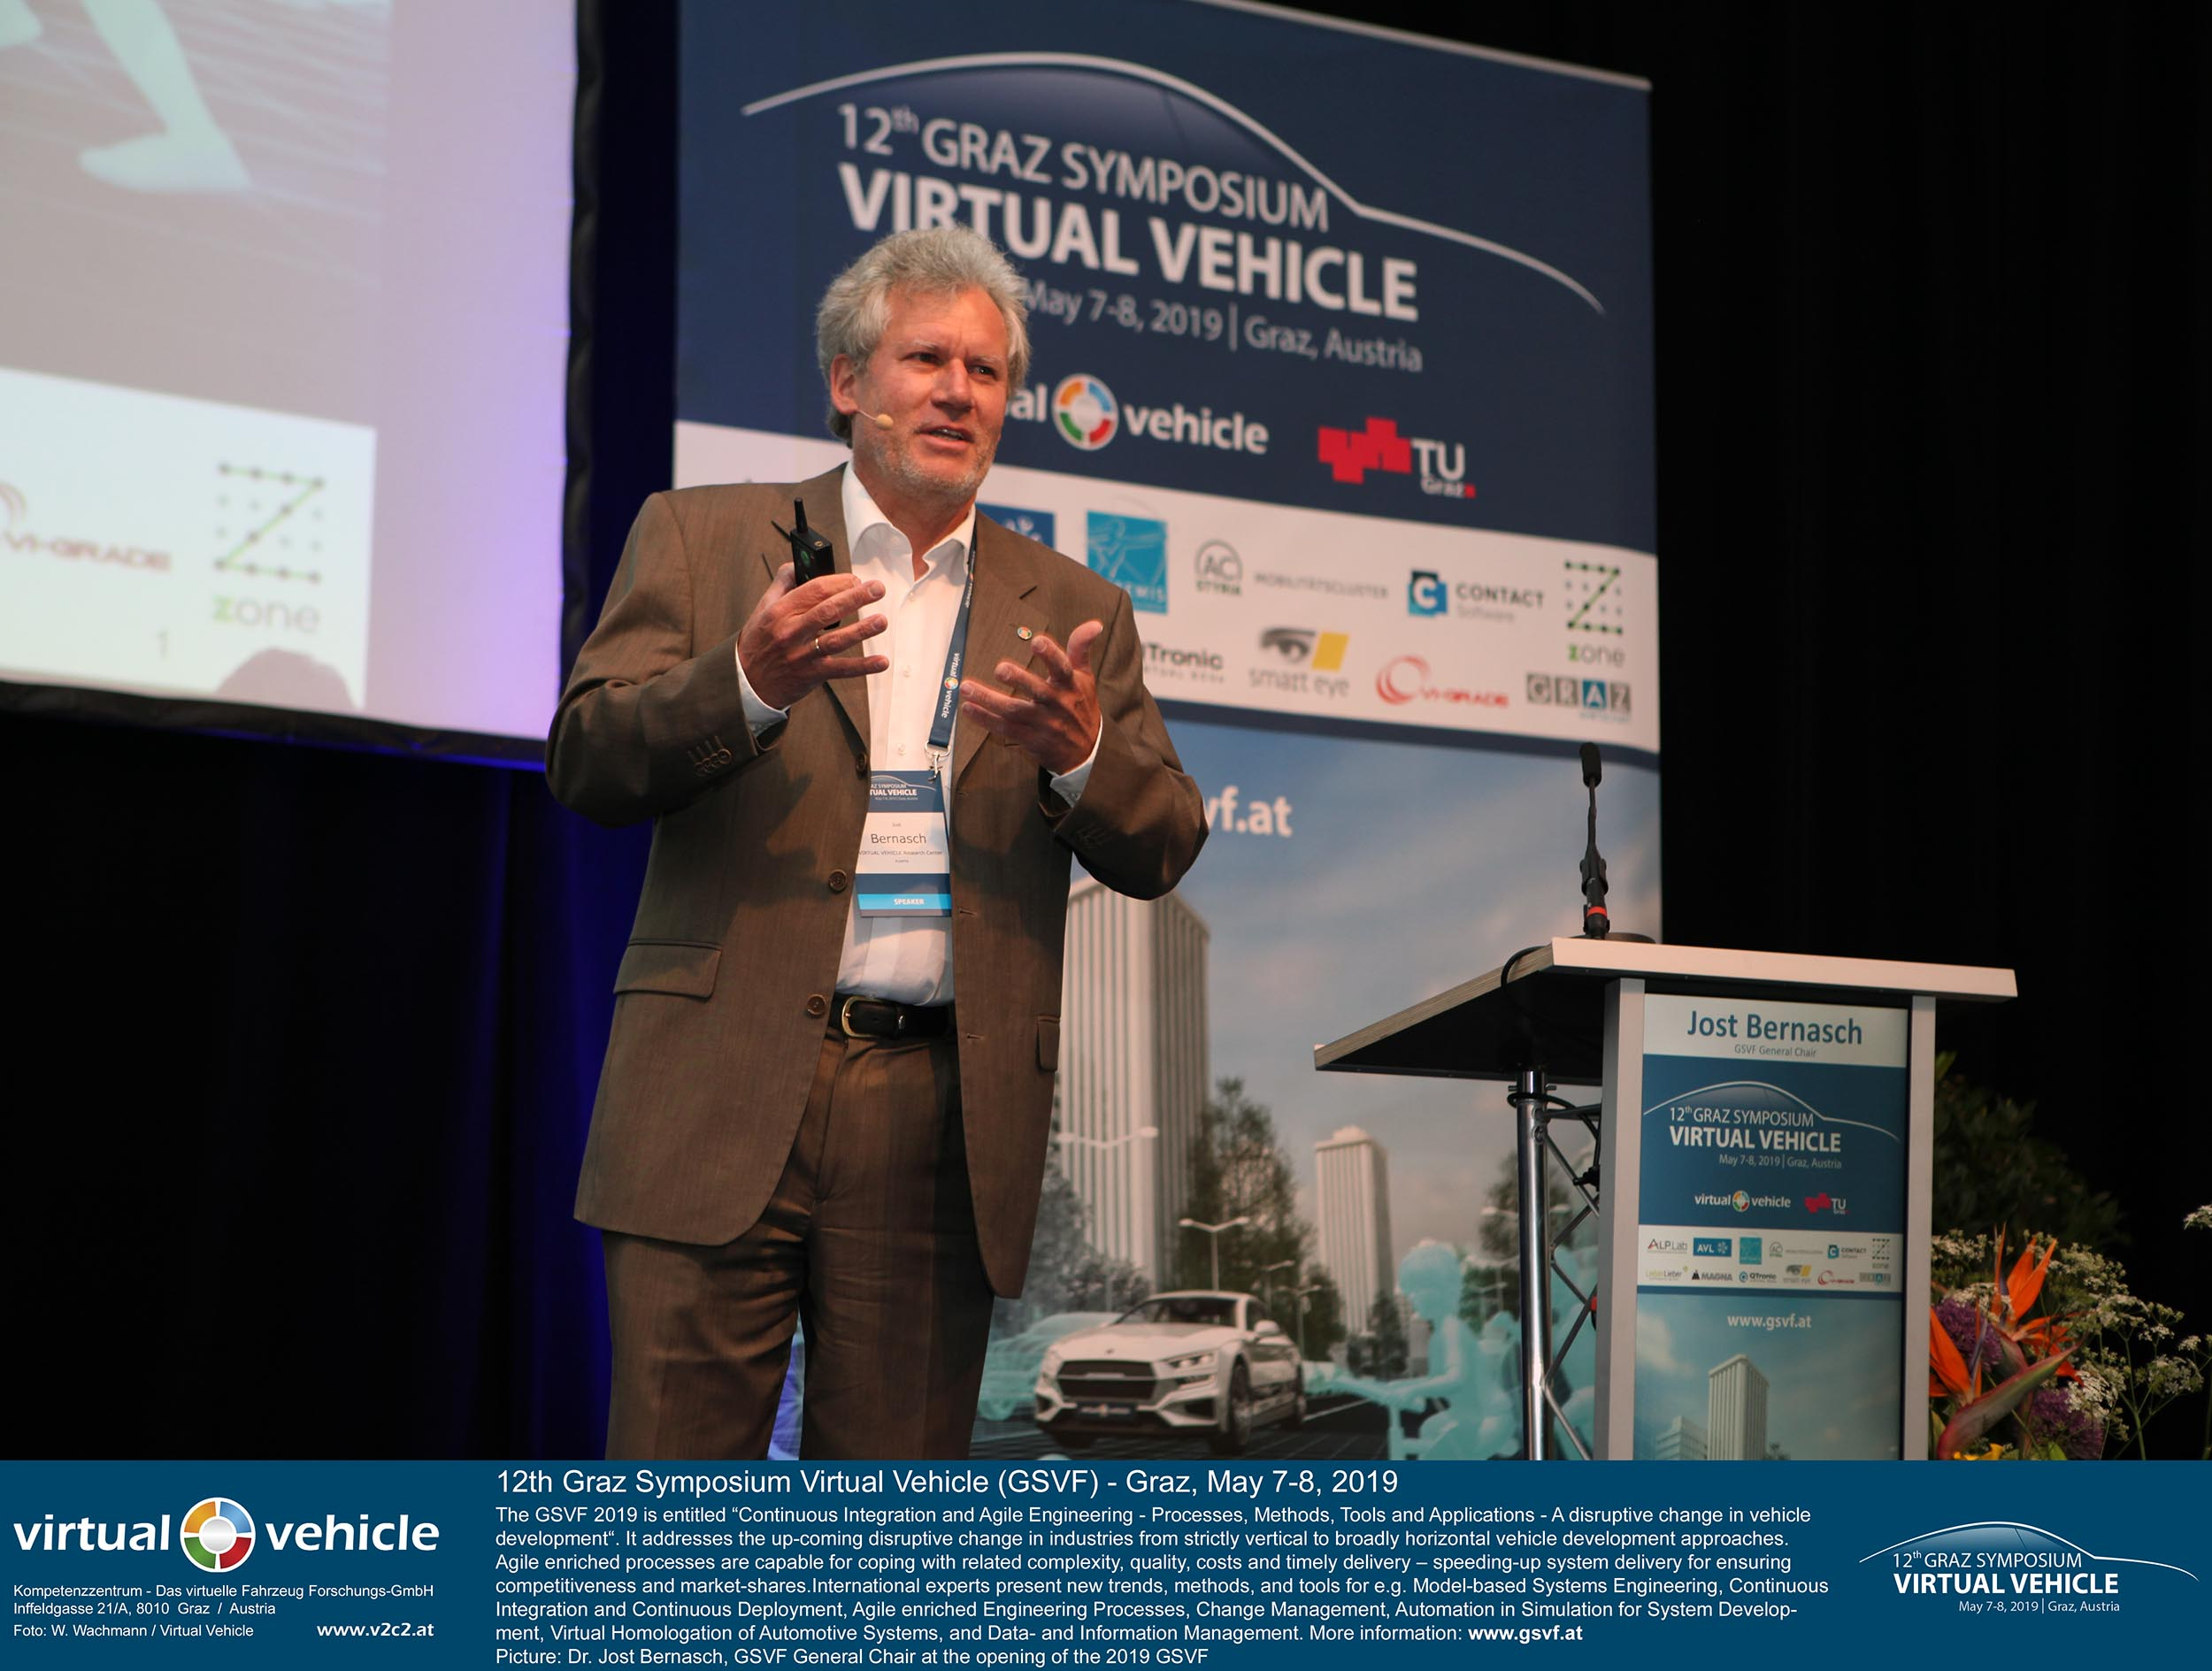 Eröffnung des 12. Grazer Symposiums Virtuelles Fahrzeug 2019 durch Dr. Jost Bernasch (GF VIRTUAL VEHICLE), General Chair des GSVF am 7. Mai in der Seifenfabrik Graz. ©VIRTUAL VEHICLE